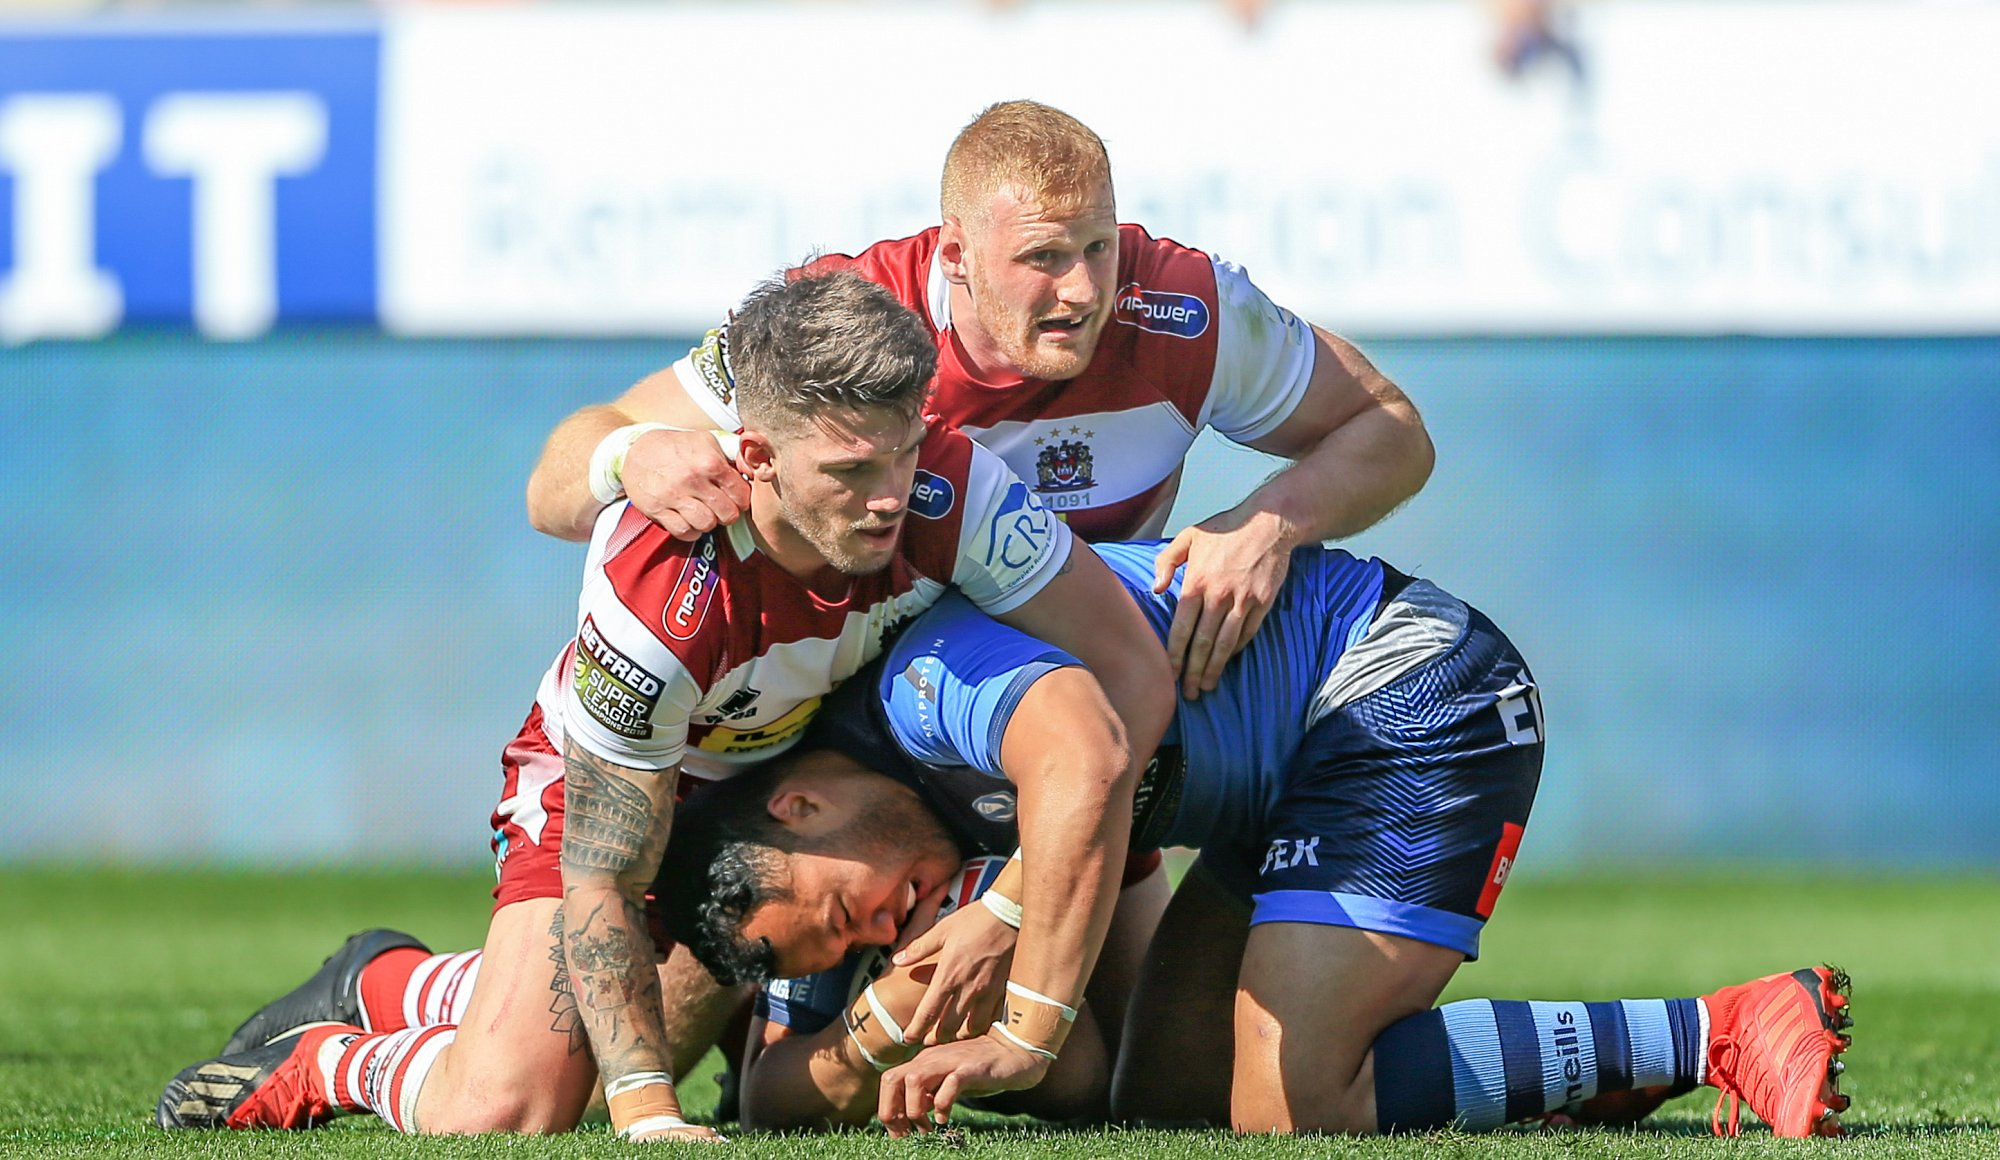 Mistakes cost us: Gildart